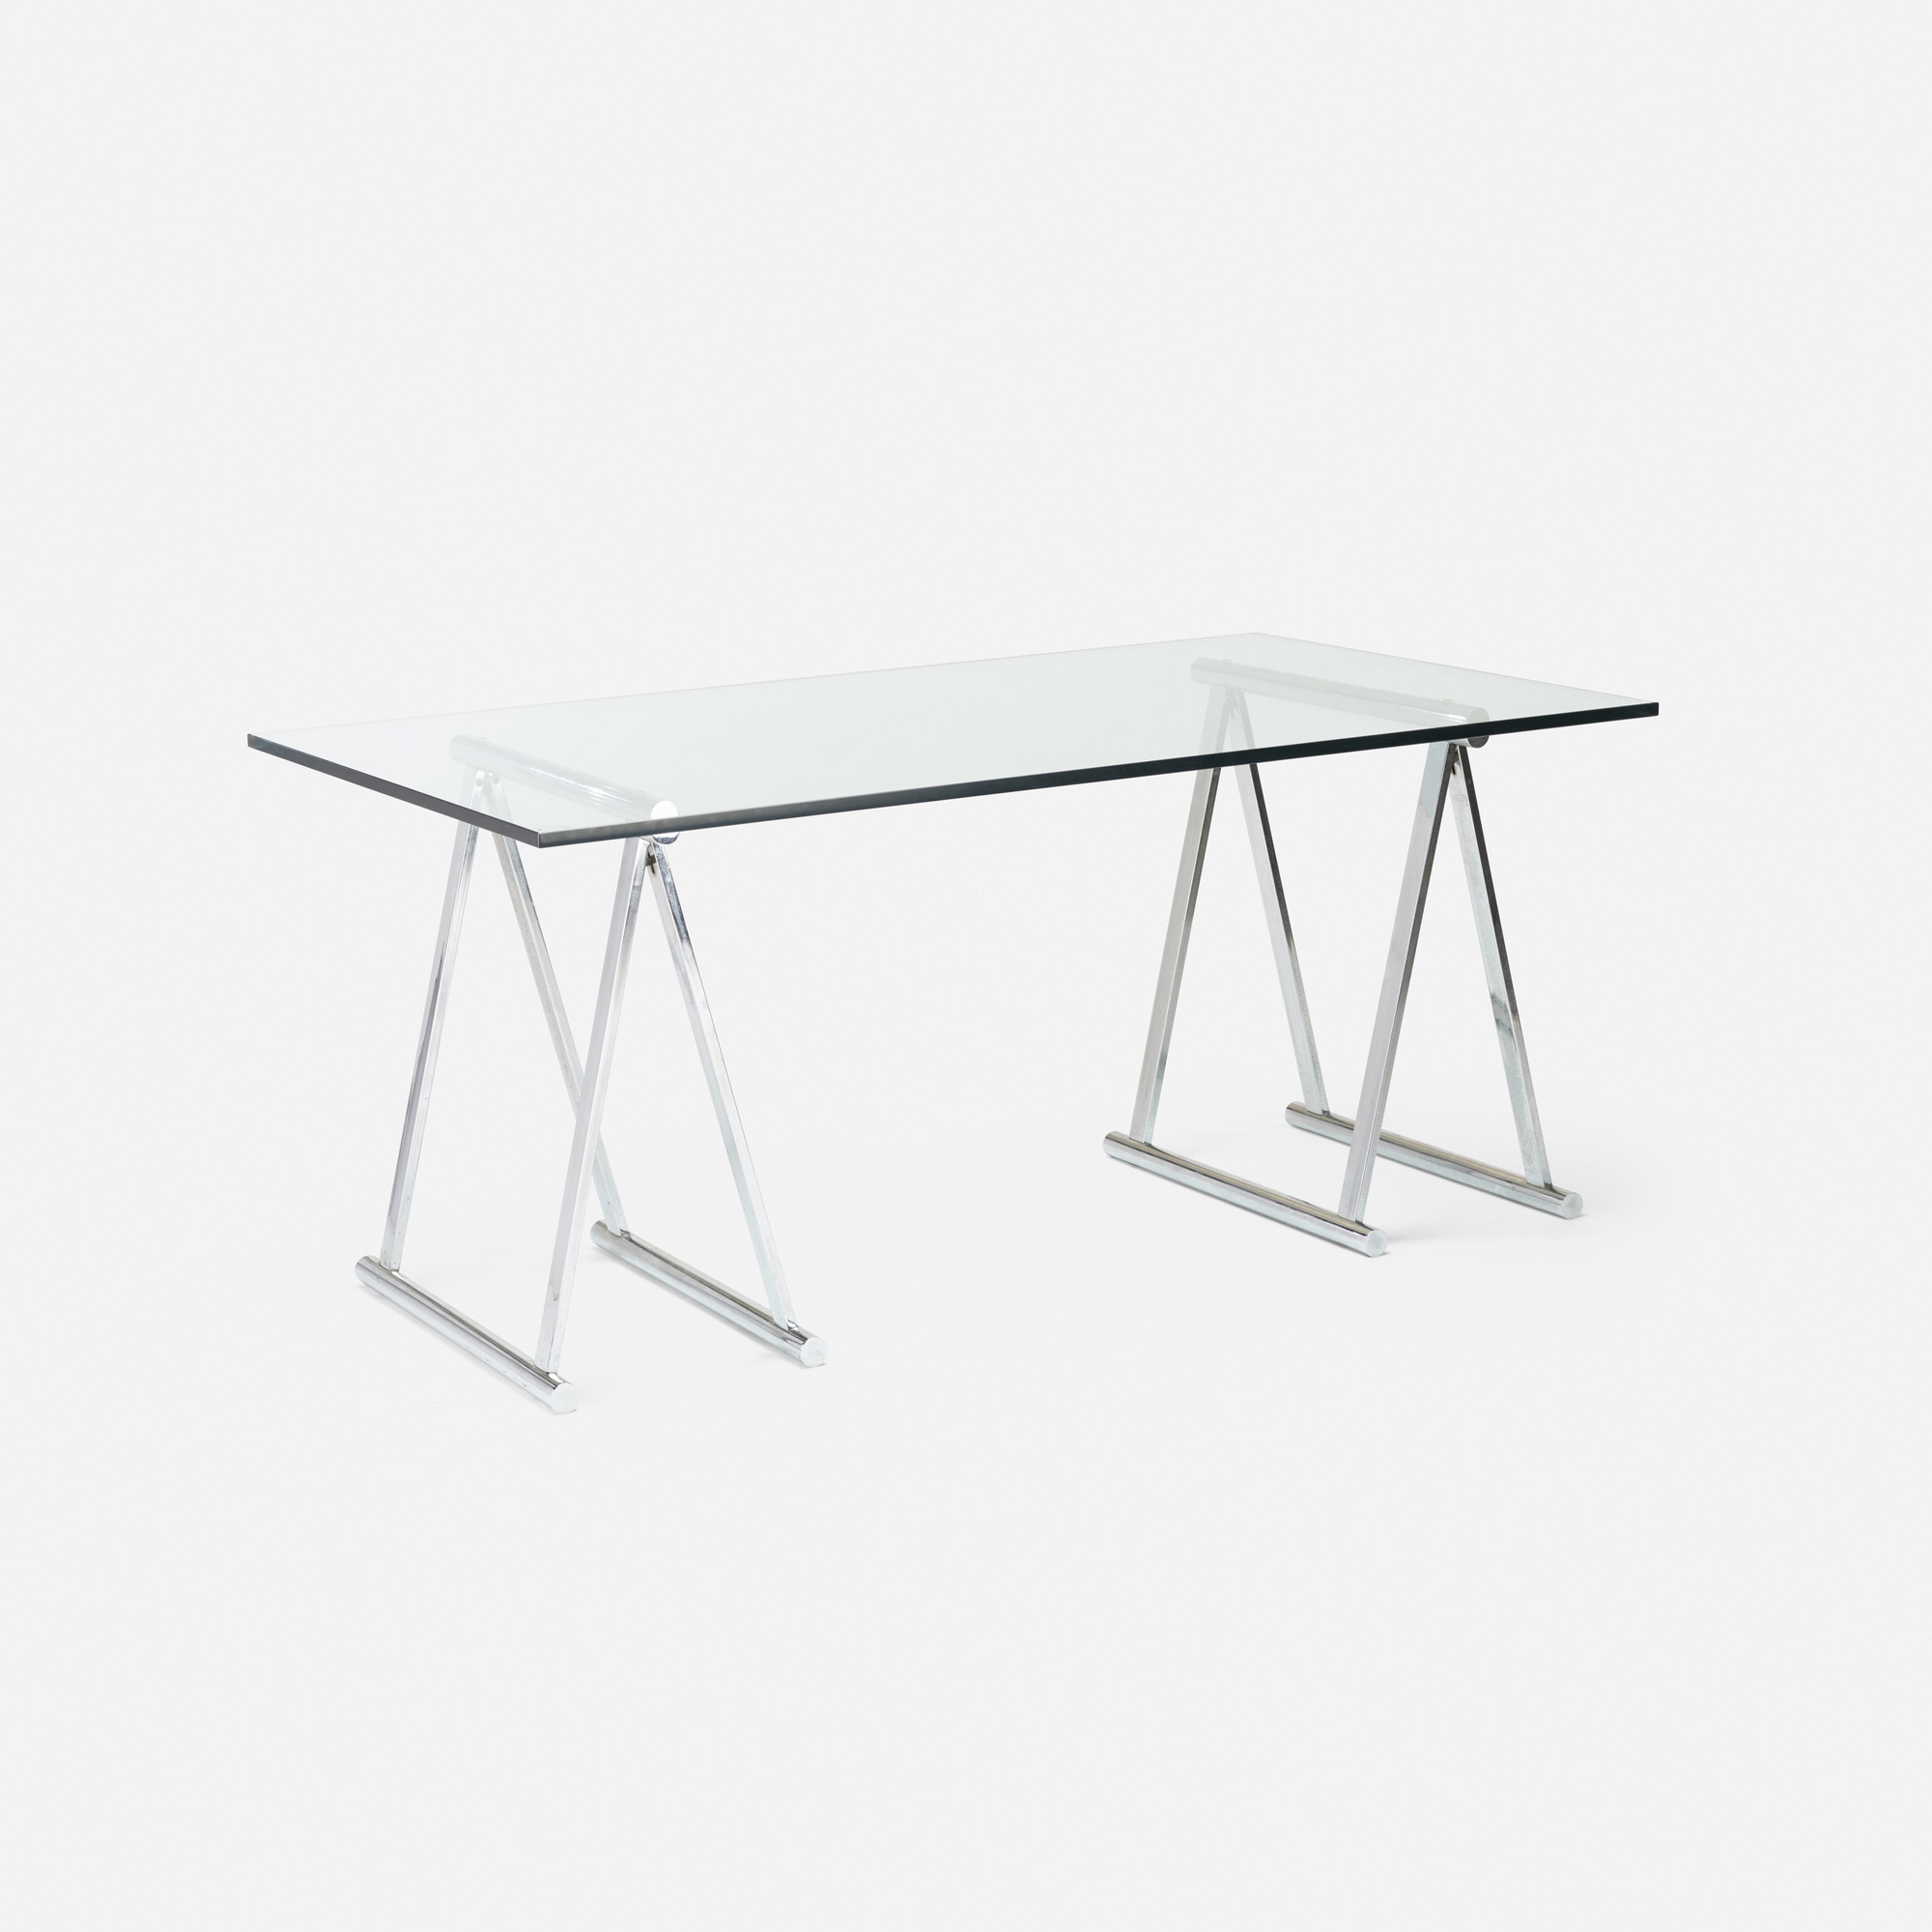 115: Alessandro Albrizzi / dining table (1 of 2)